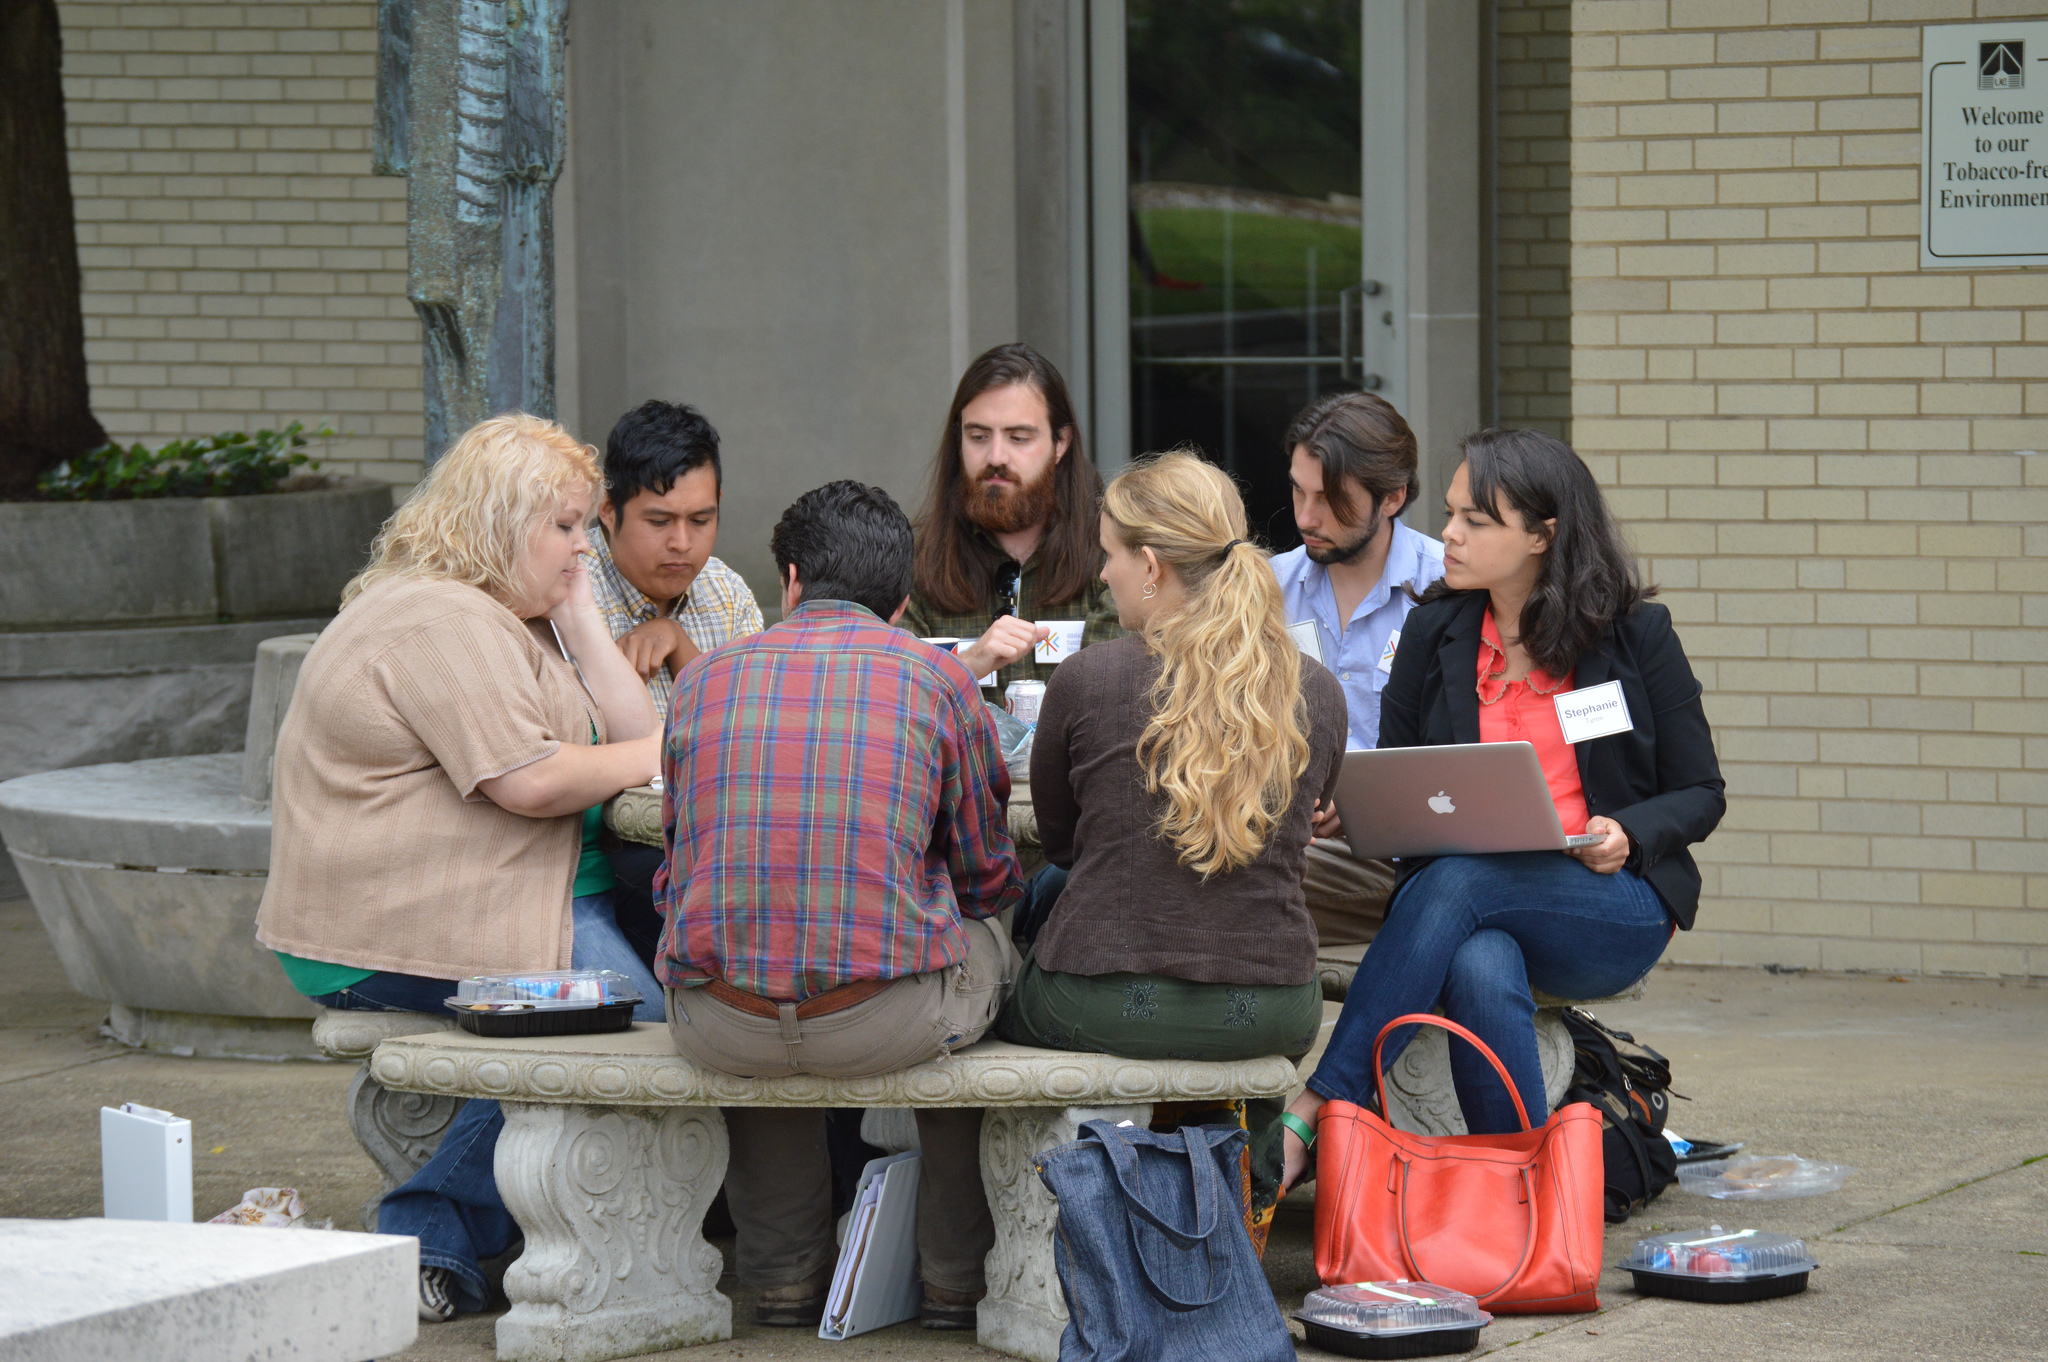 Fellows, Civic Life Institute attendees, and I discuss alternative business models over lunch. Photo by Catherine Moore.